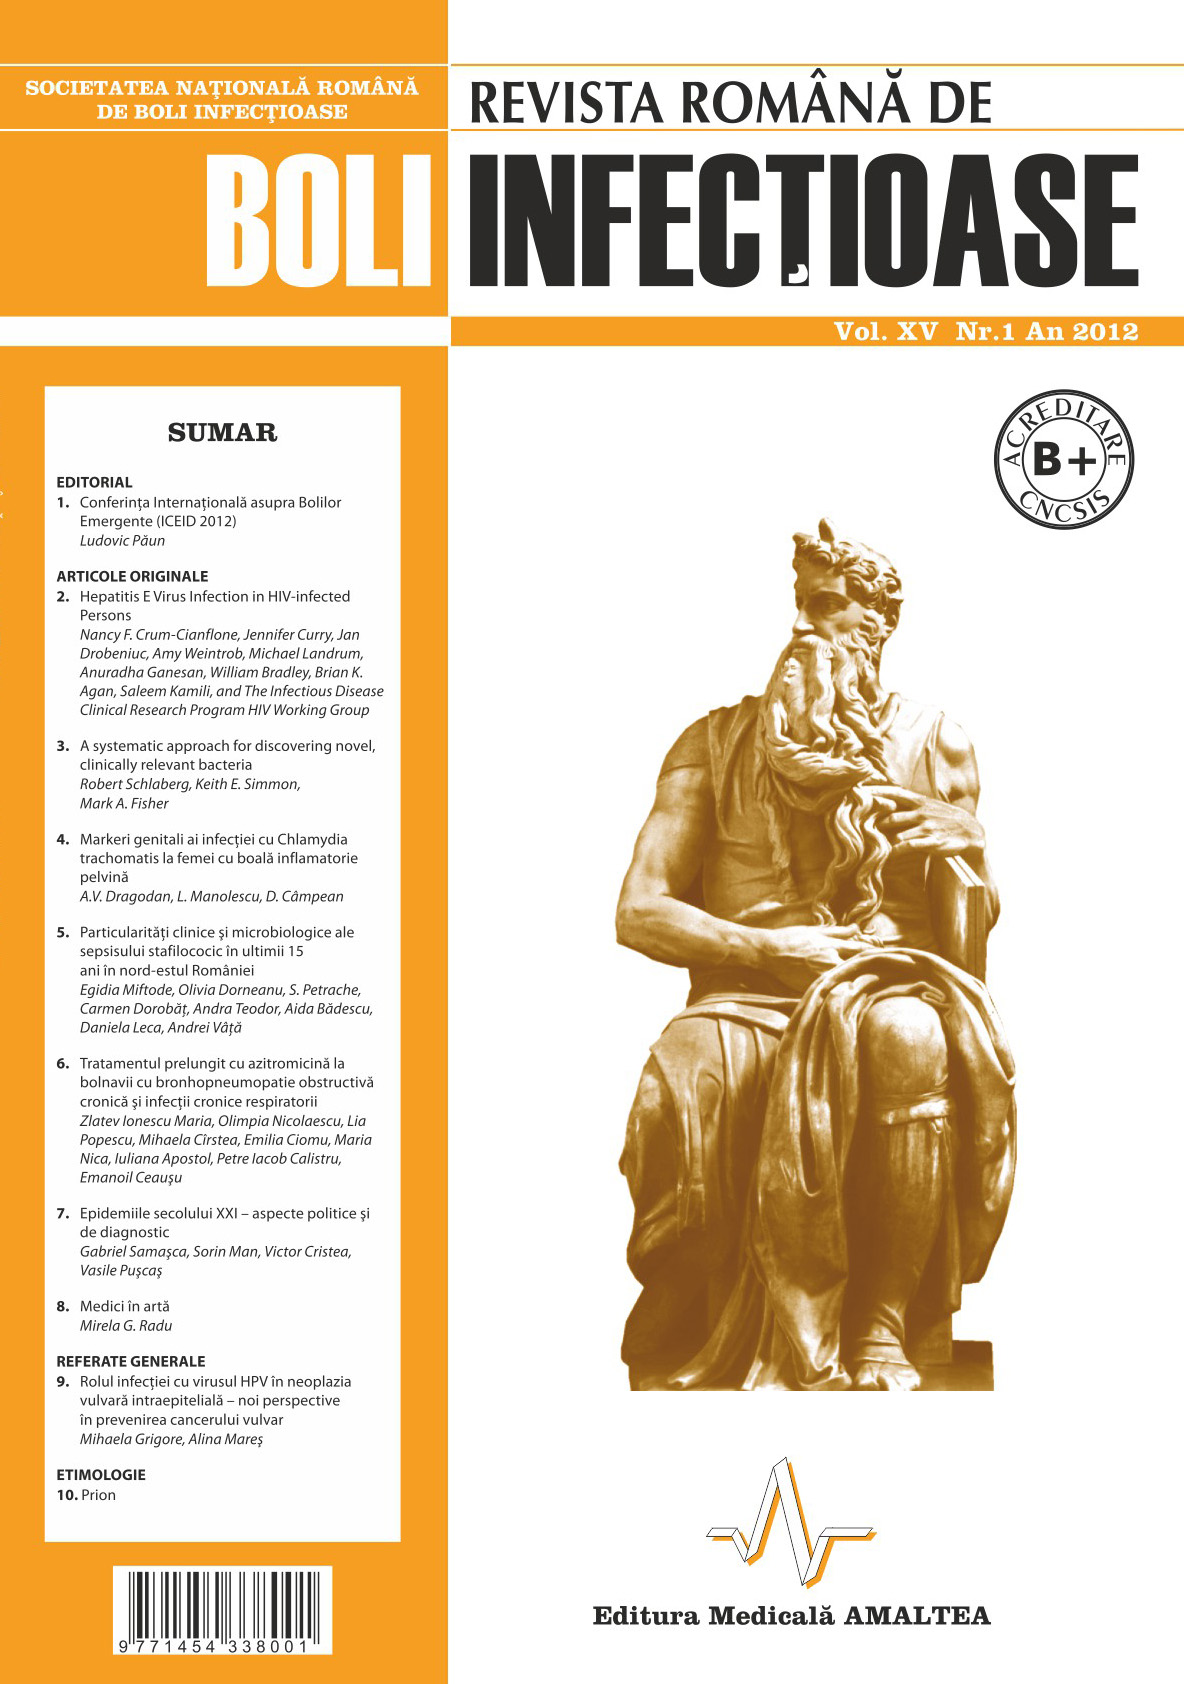 Revista Romana de Boli Infectioase | Vol. XV, No. 1, 2012